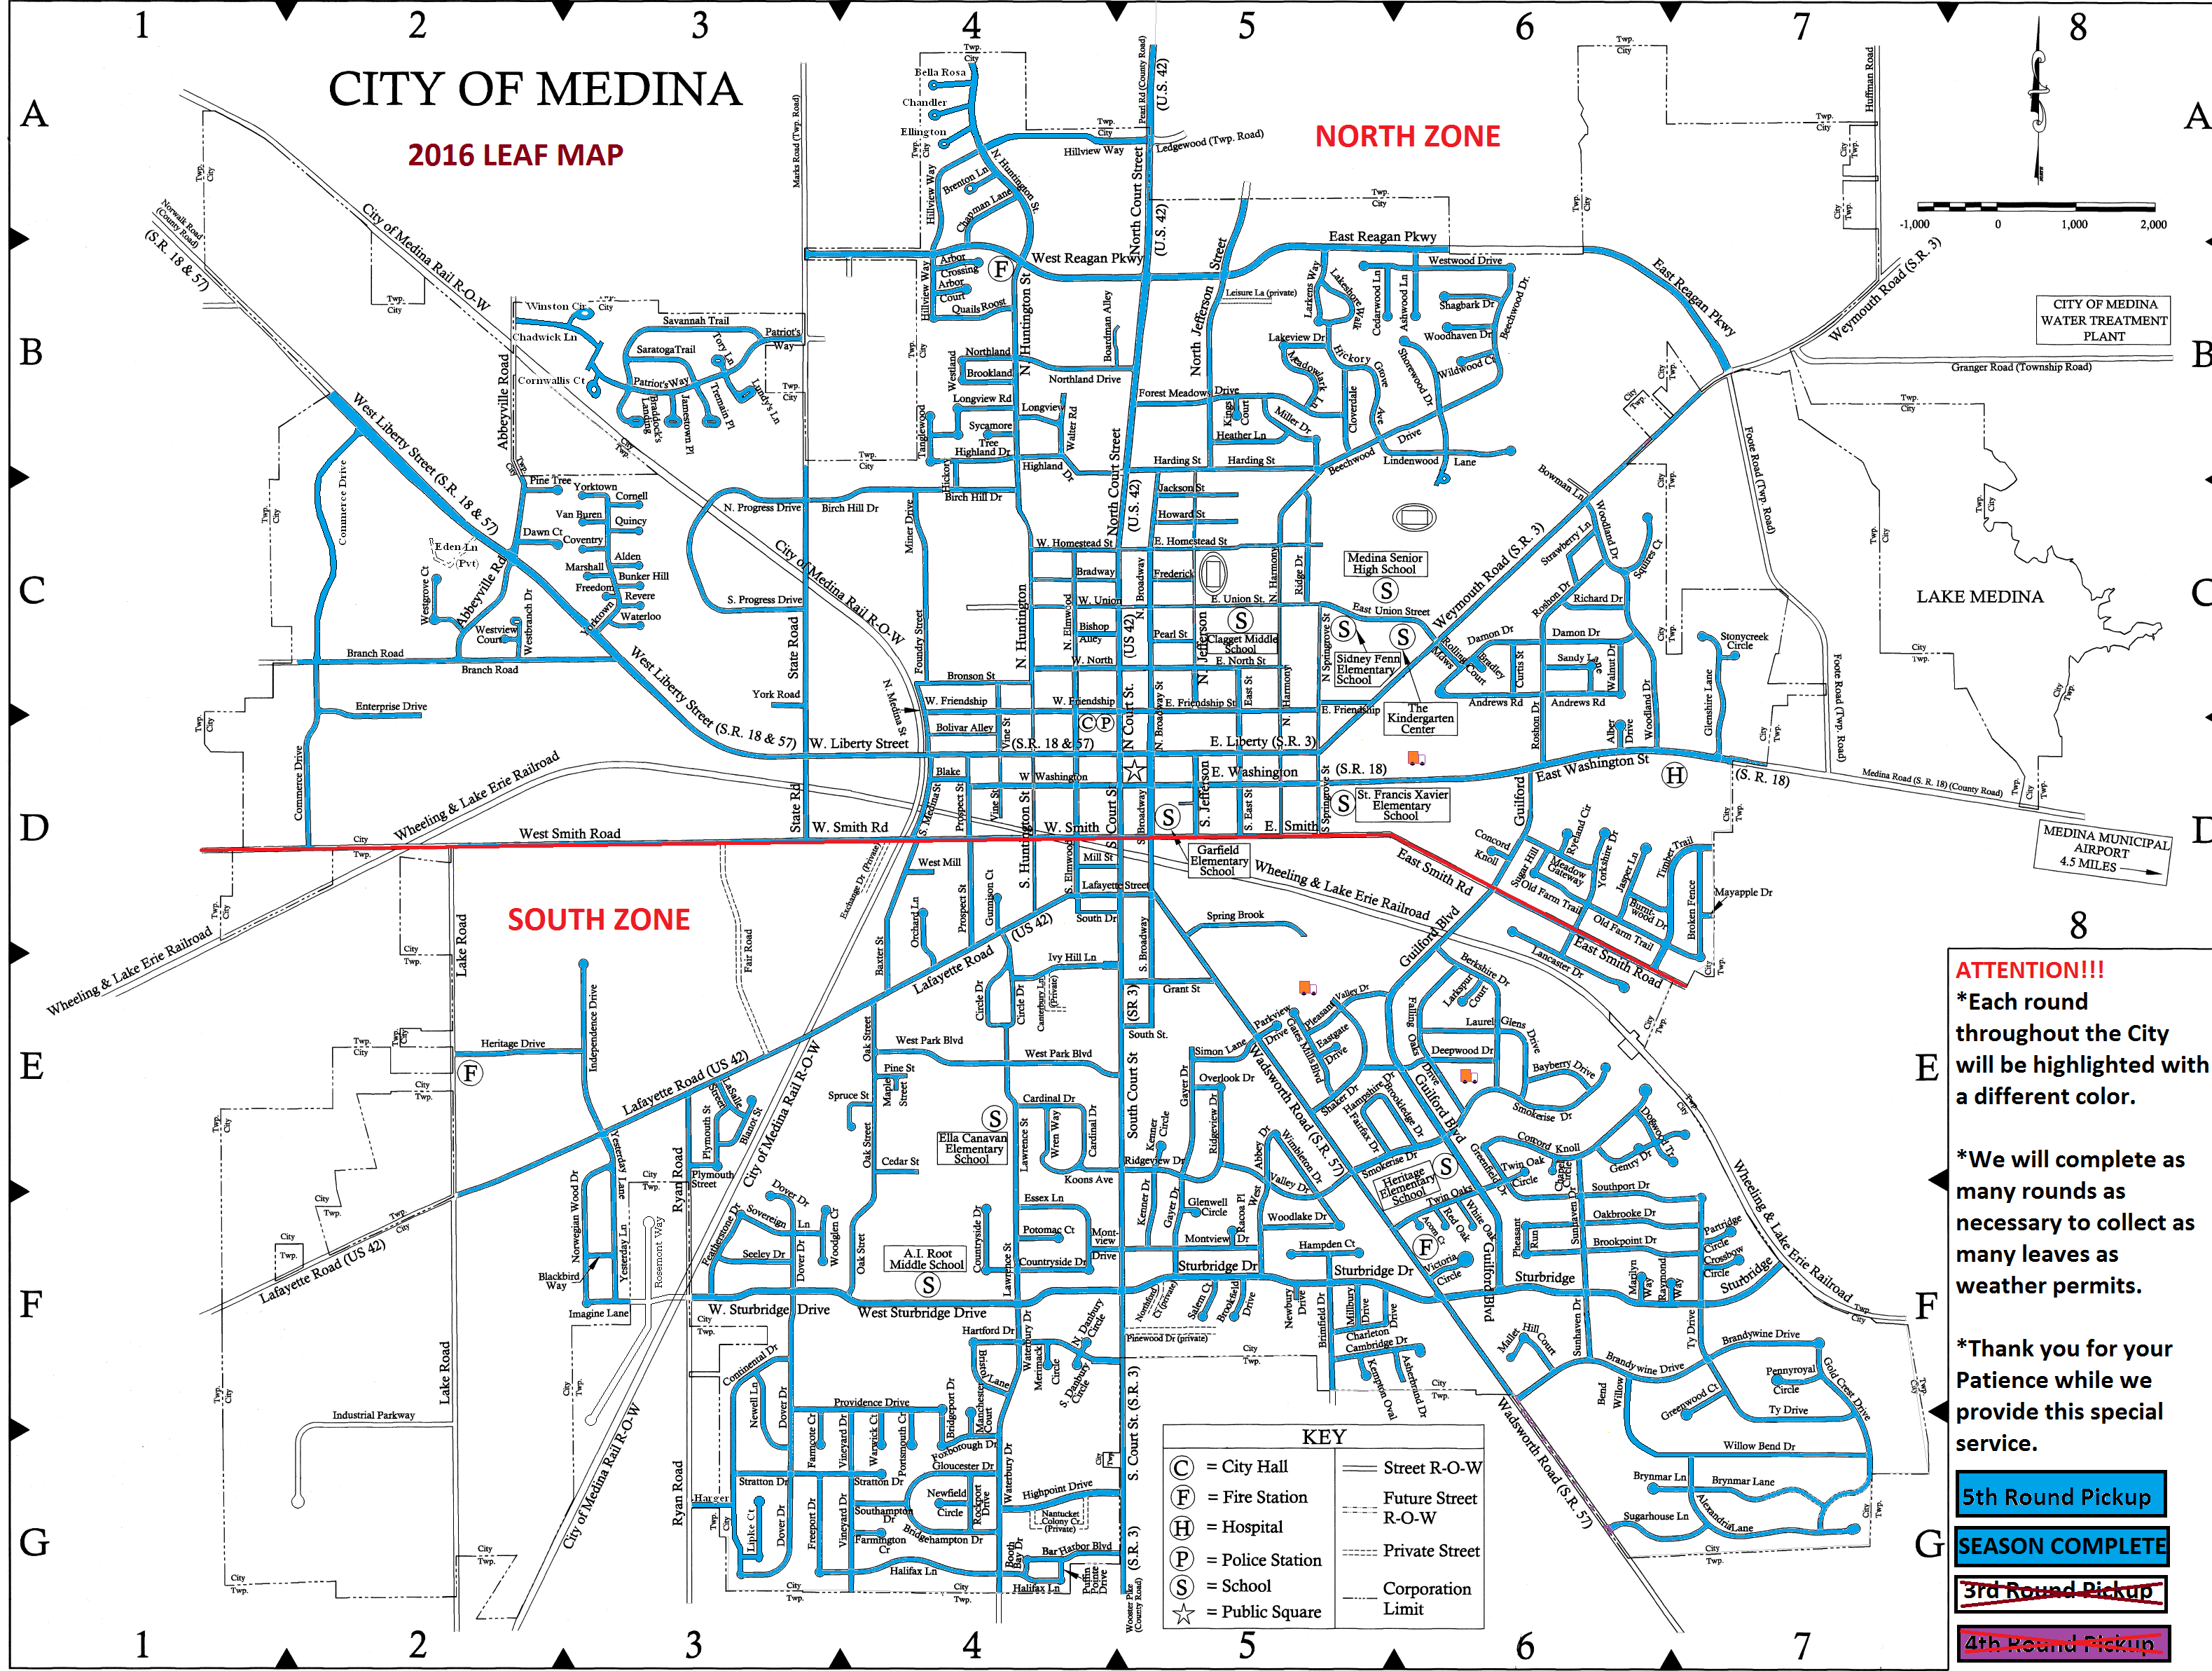 The City of Medina Ohio